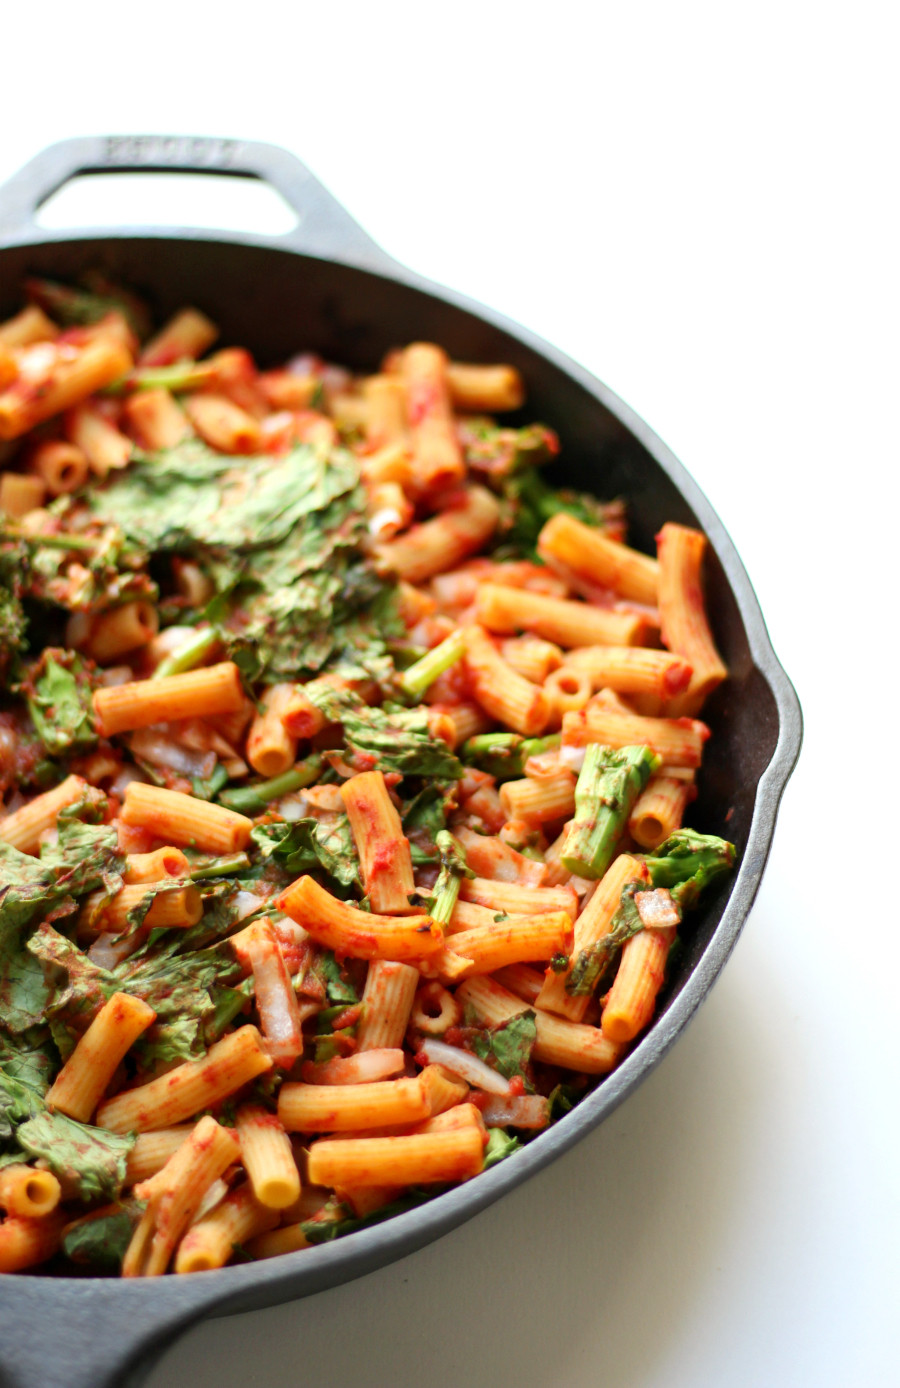 skillet full of gluten free penne pasta with tomatoes and broccoli rabe